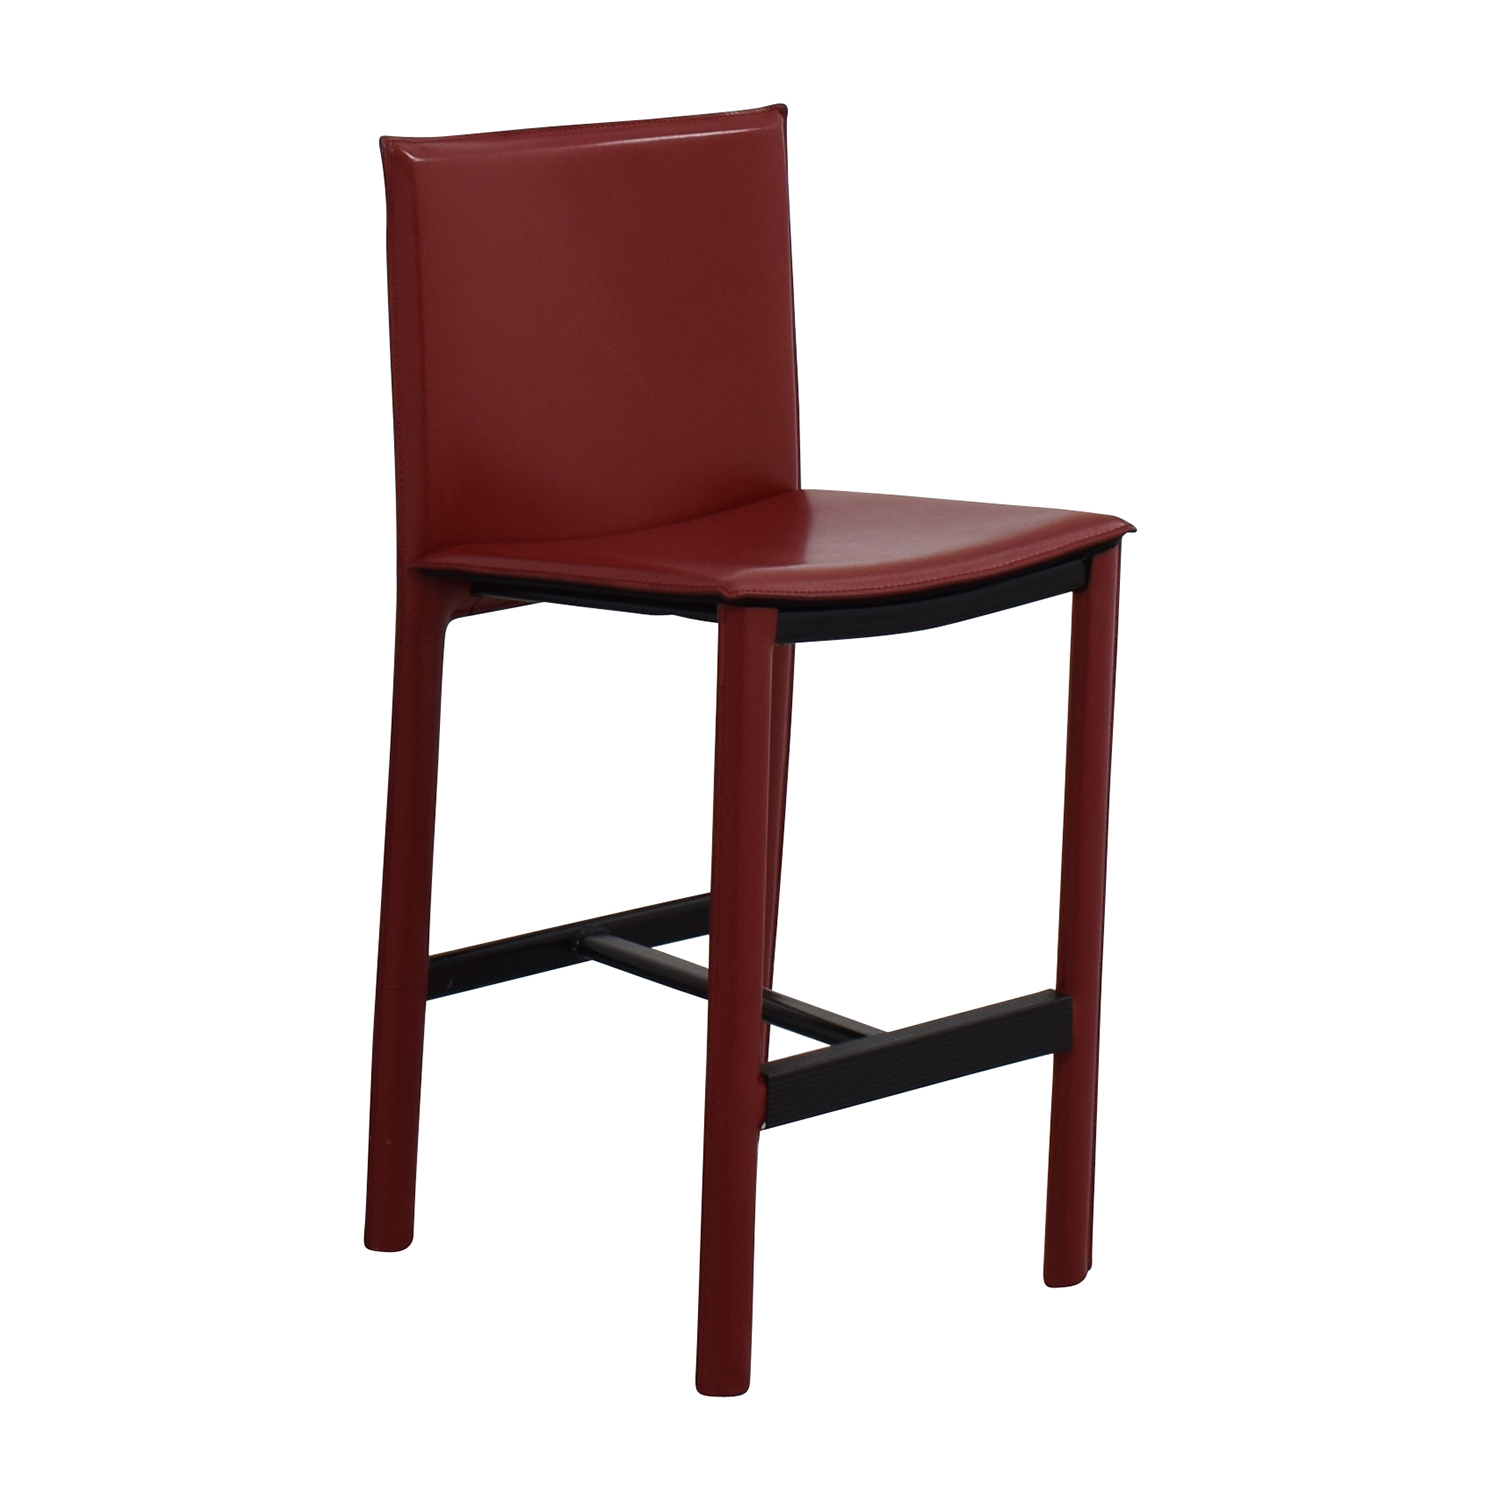 Red Leather High Chair ($10)